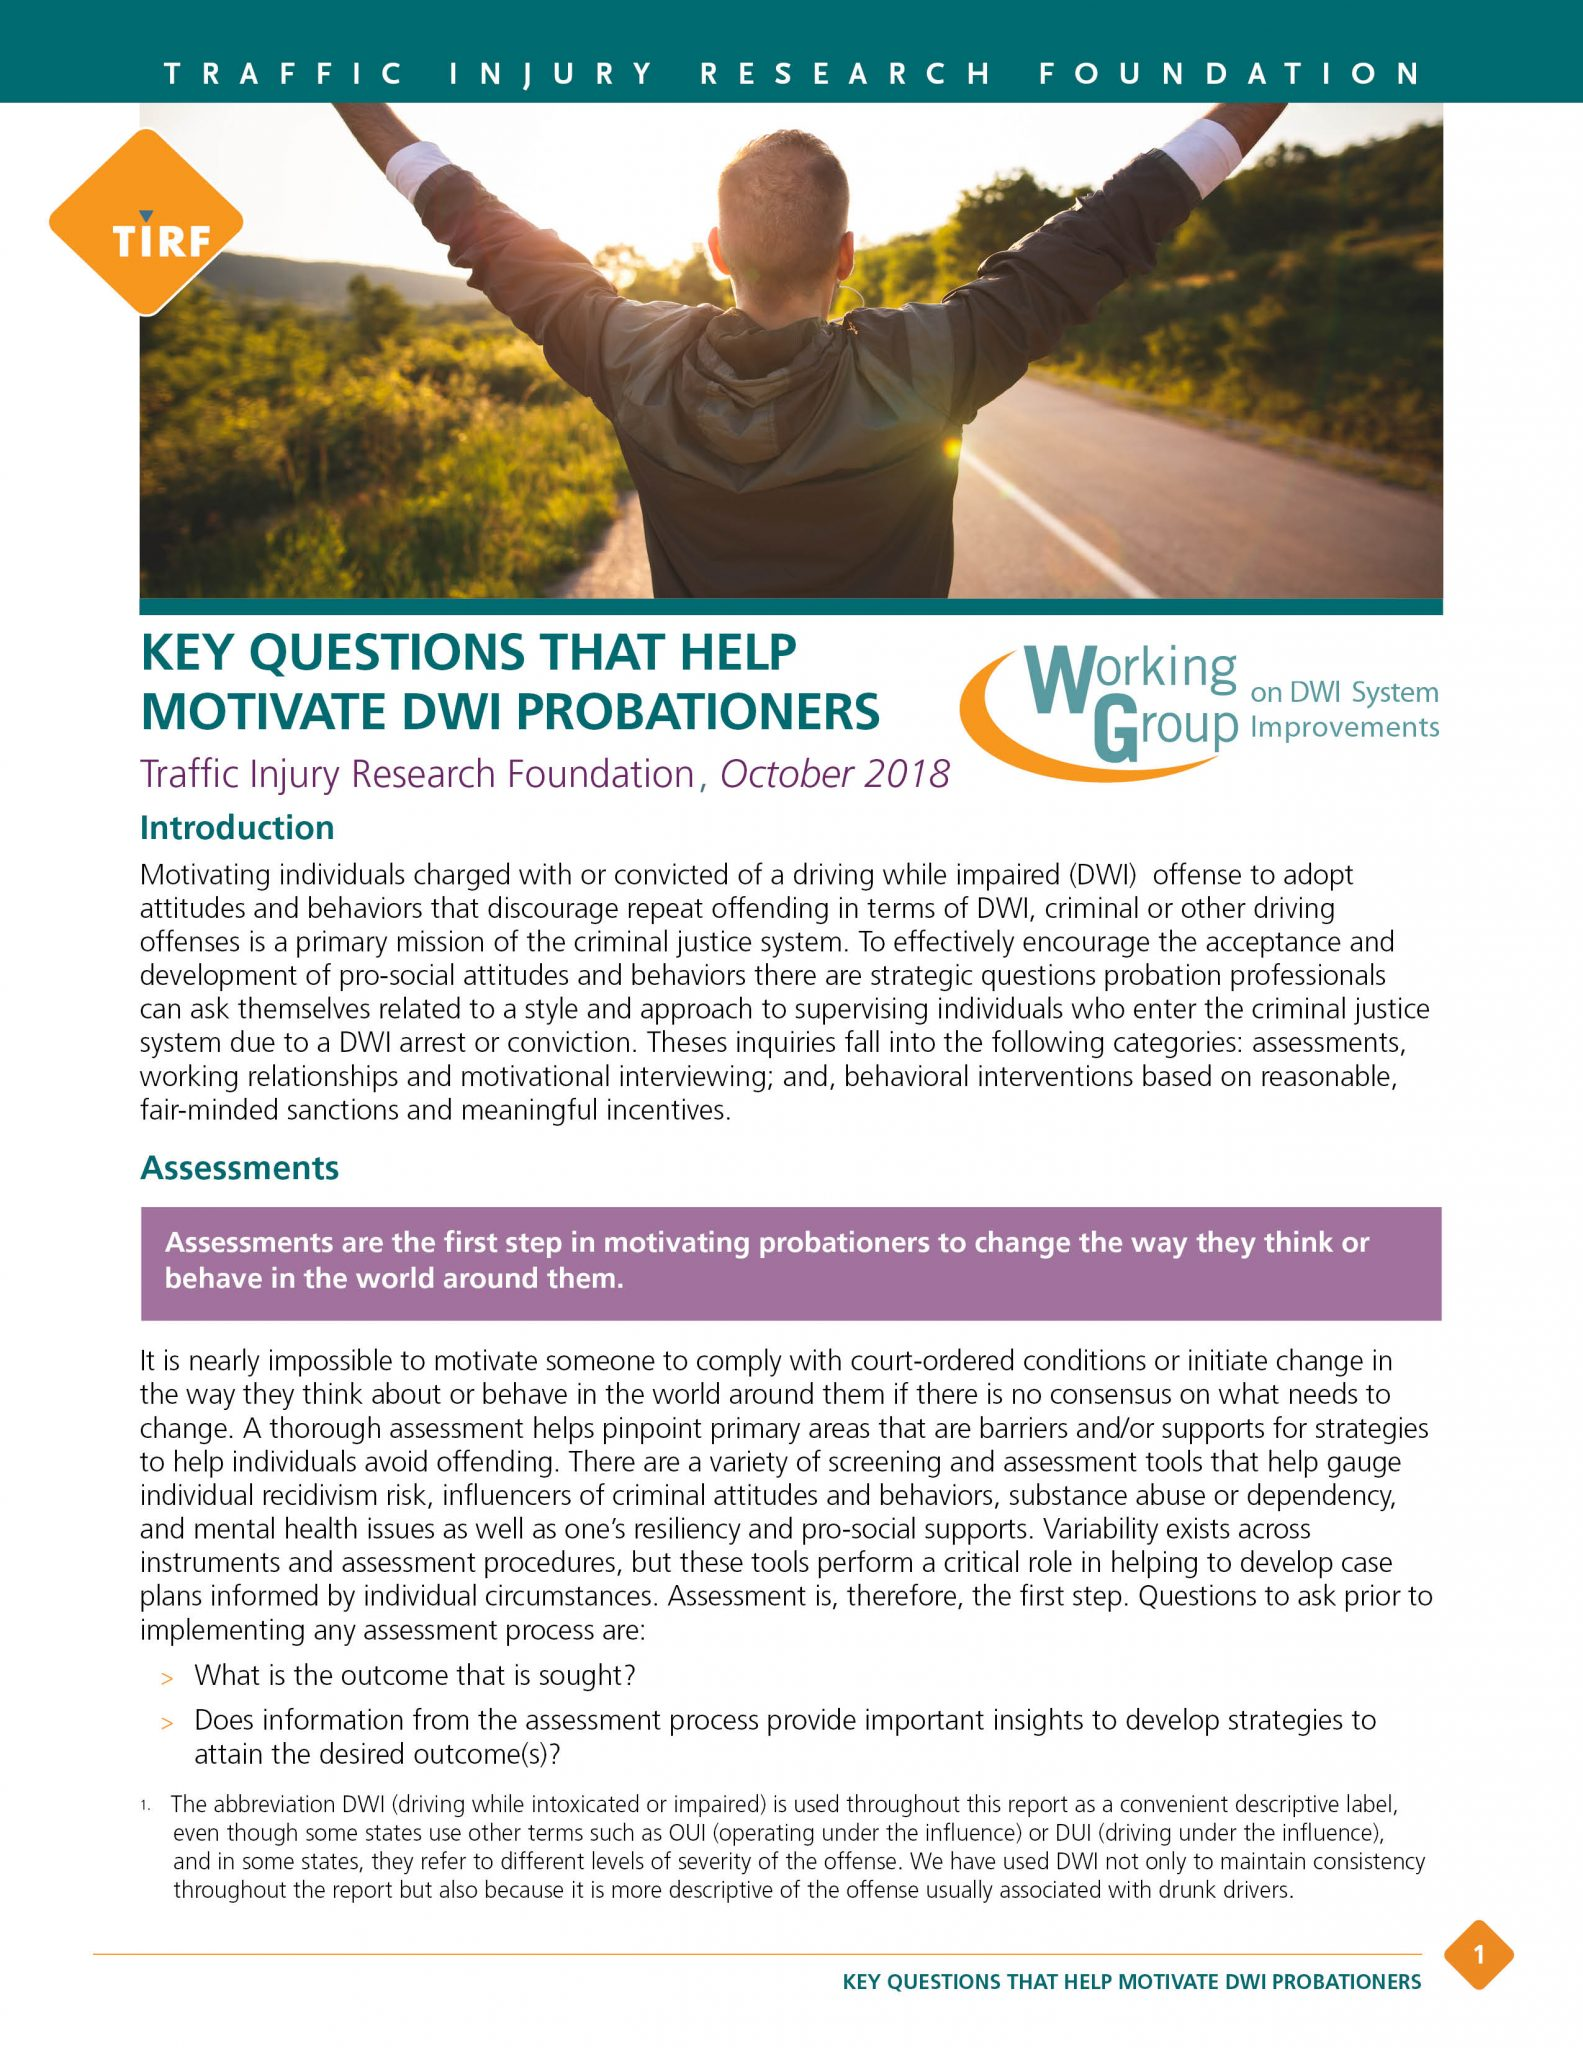 WG 2017 – Key Questions that Help Motivate DWI Probationers